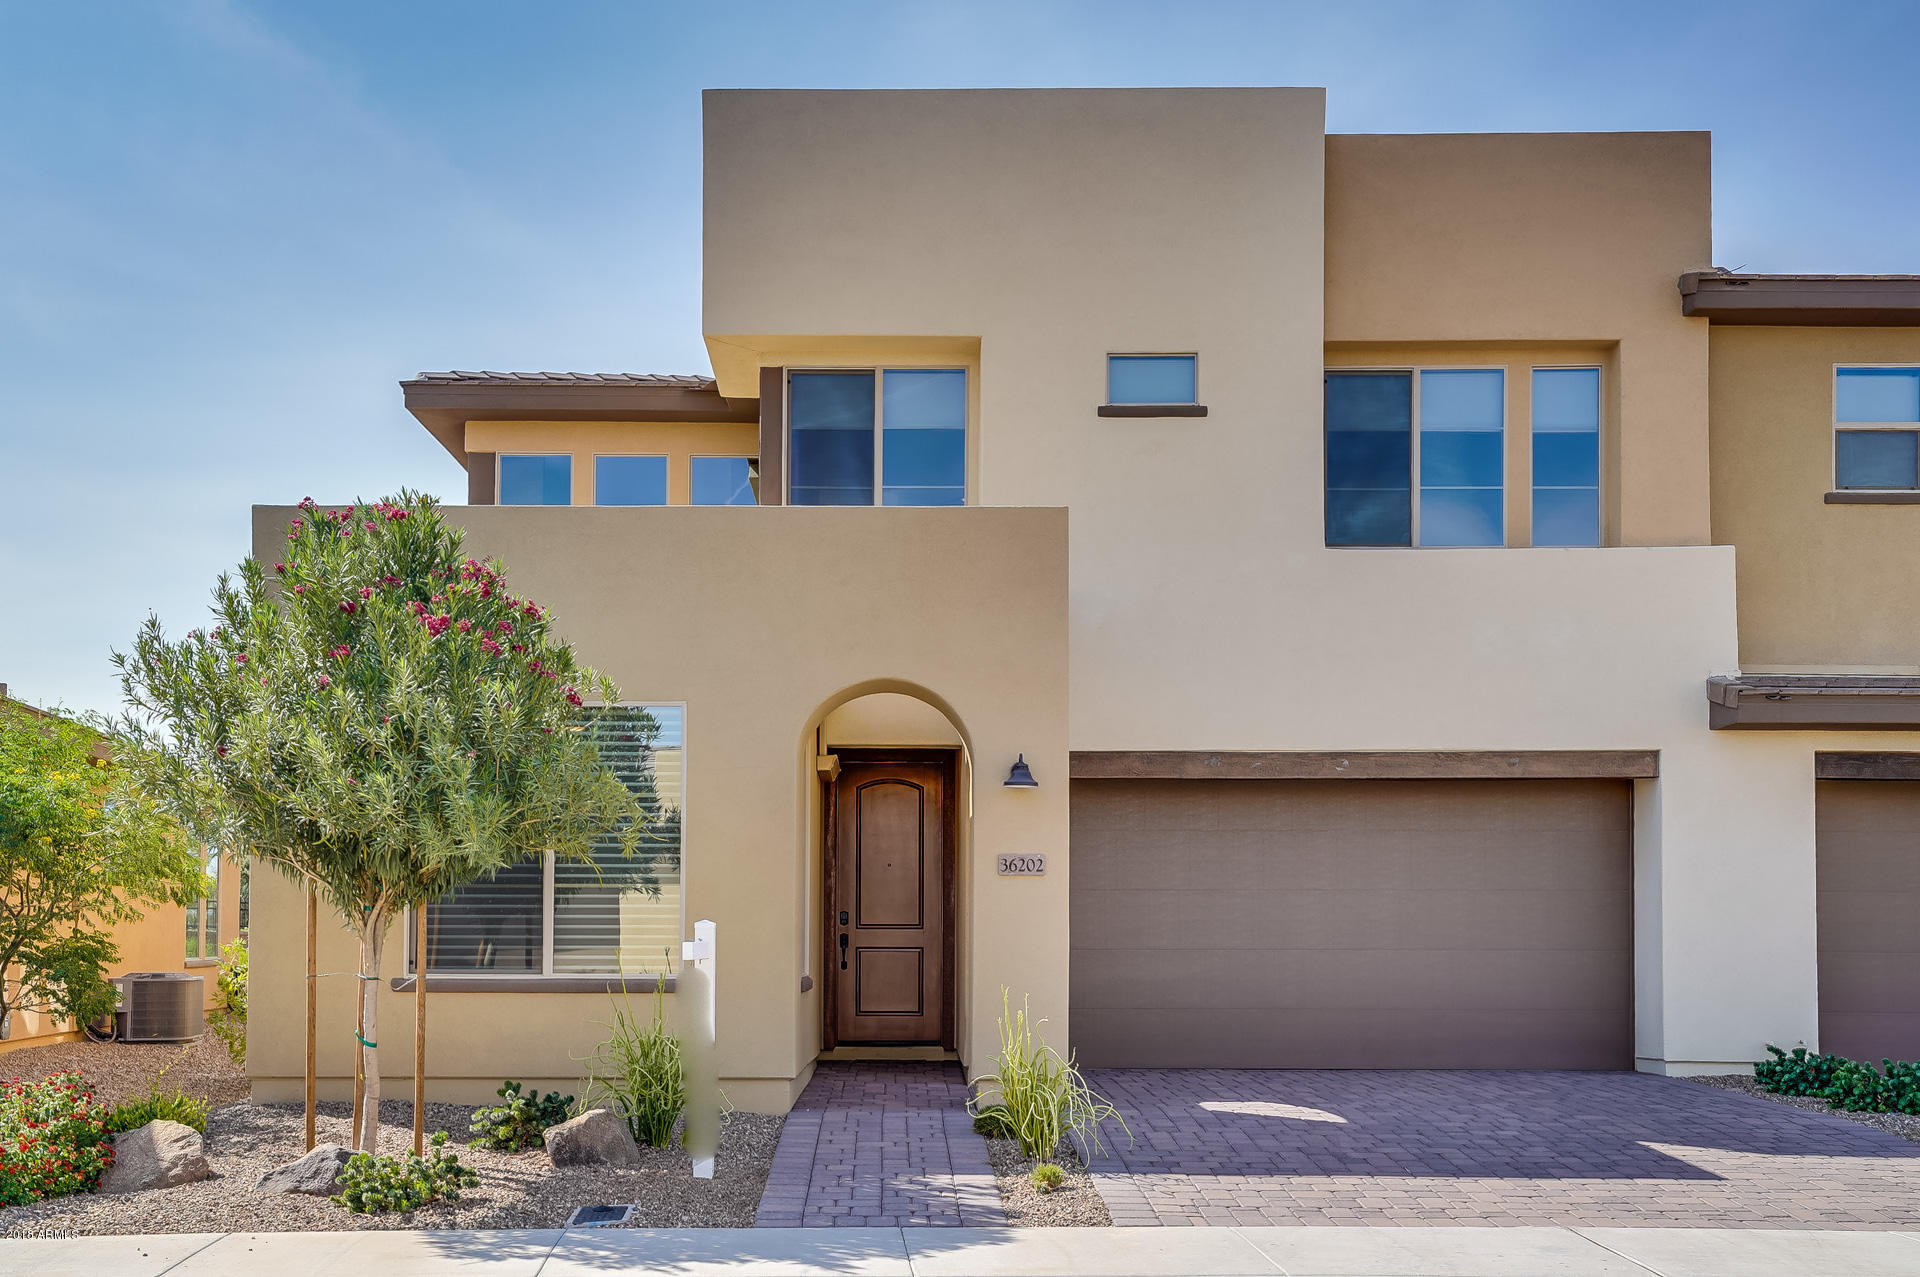 Photo of 36202 N DESERT TEA Drive, San Tan Valley, AZ 85140